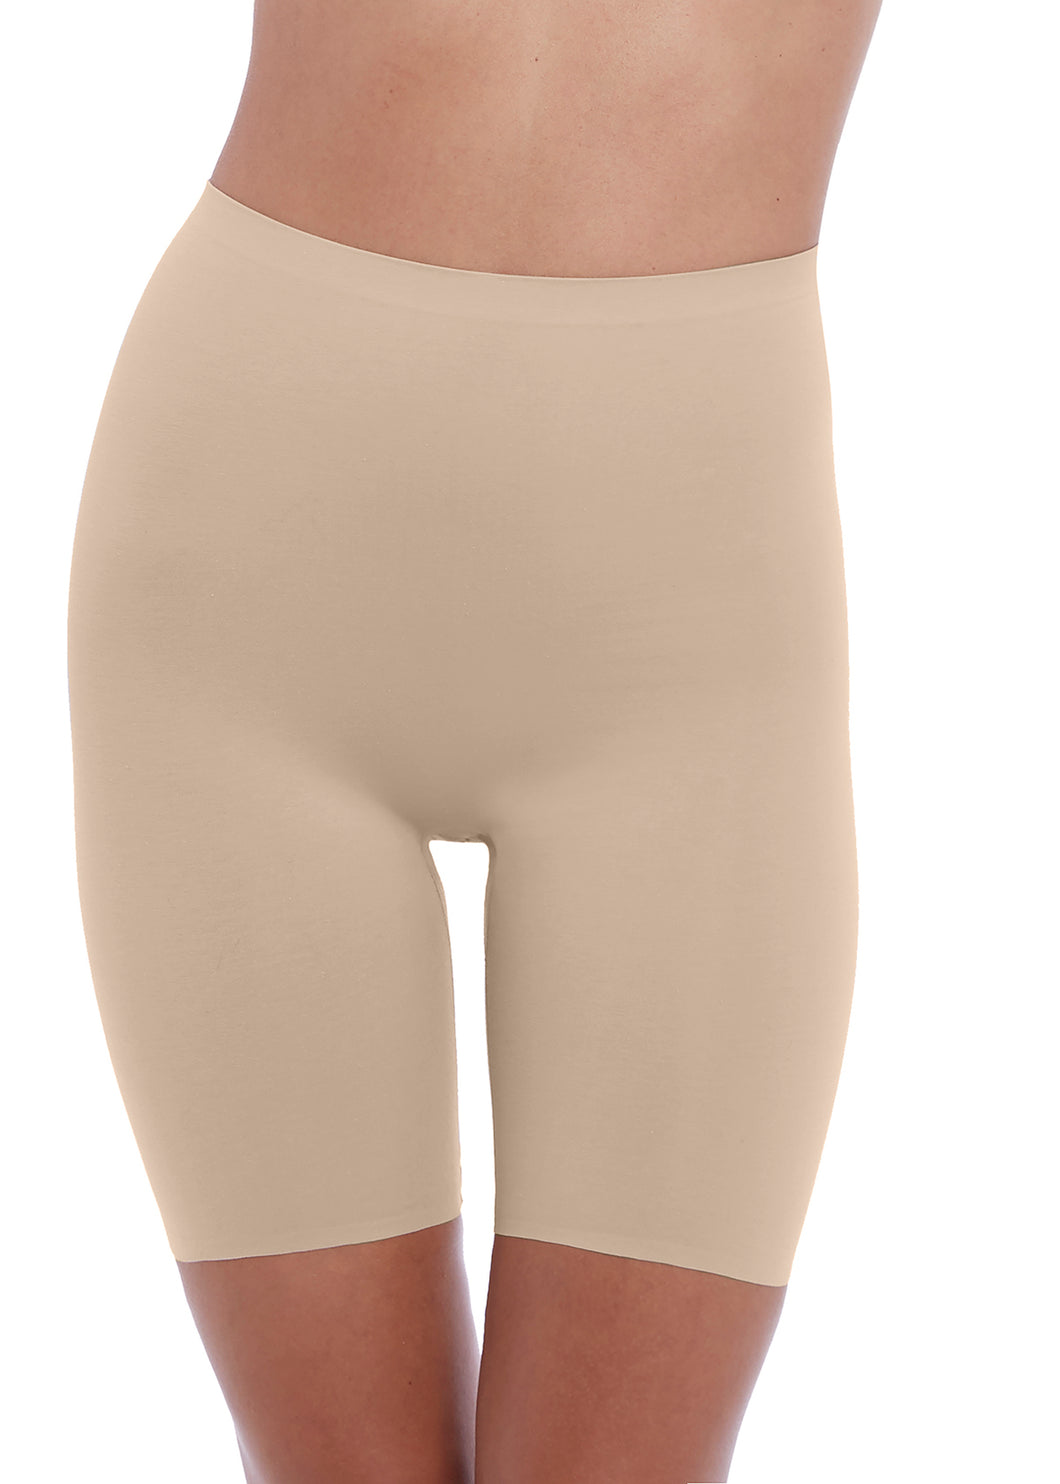 WACOAL BEYOND NAKED COTTON SHAPEWEAR THIGH SHAPER